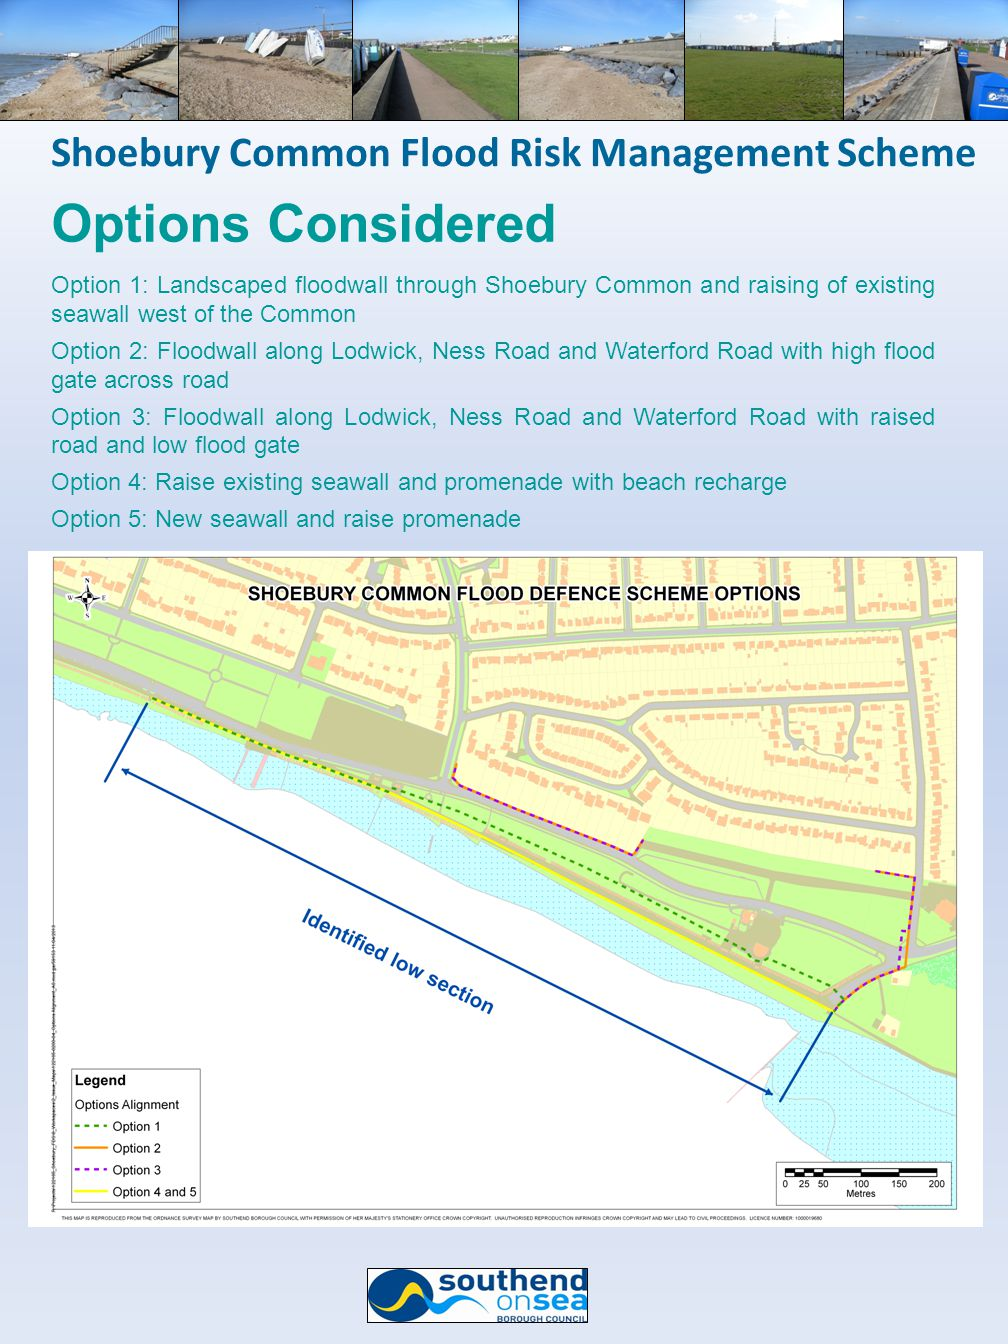 Shoebury Common Flood Risk Management Scheme Options Considered Option 1: Landscaped floodwall through Shoebury Common and raising of existing seawall